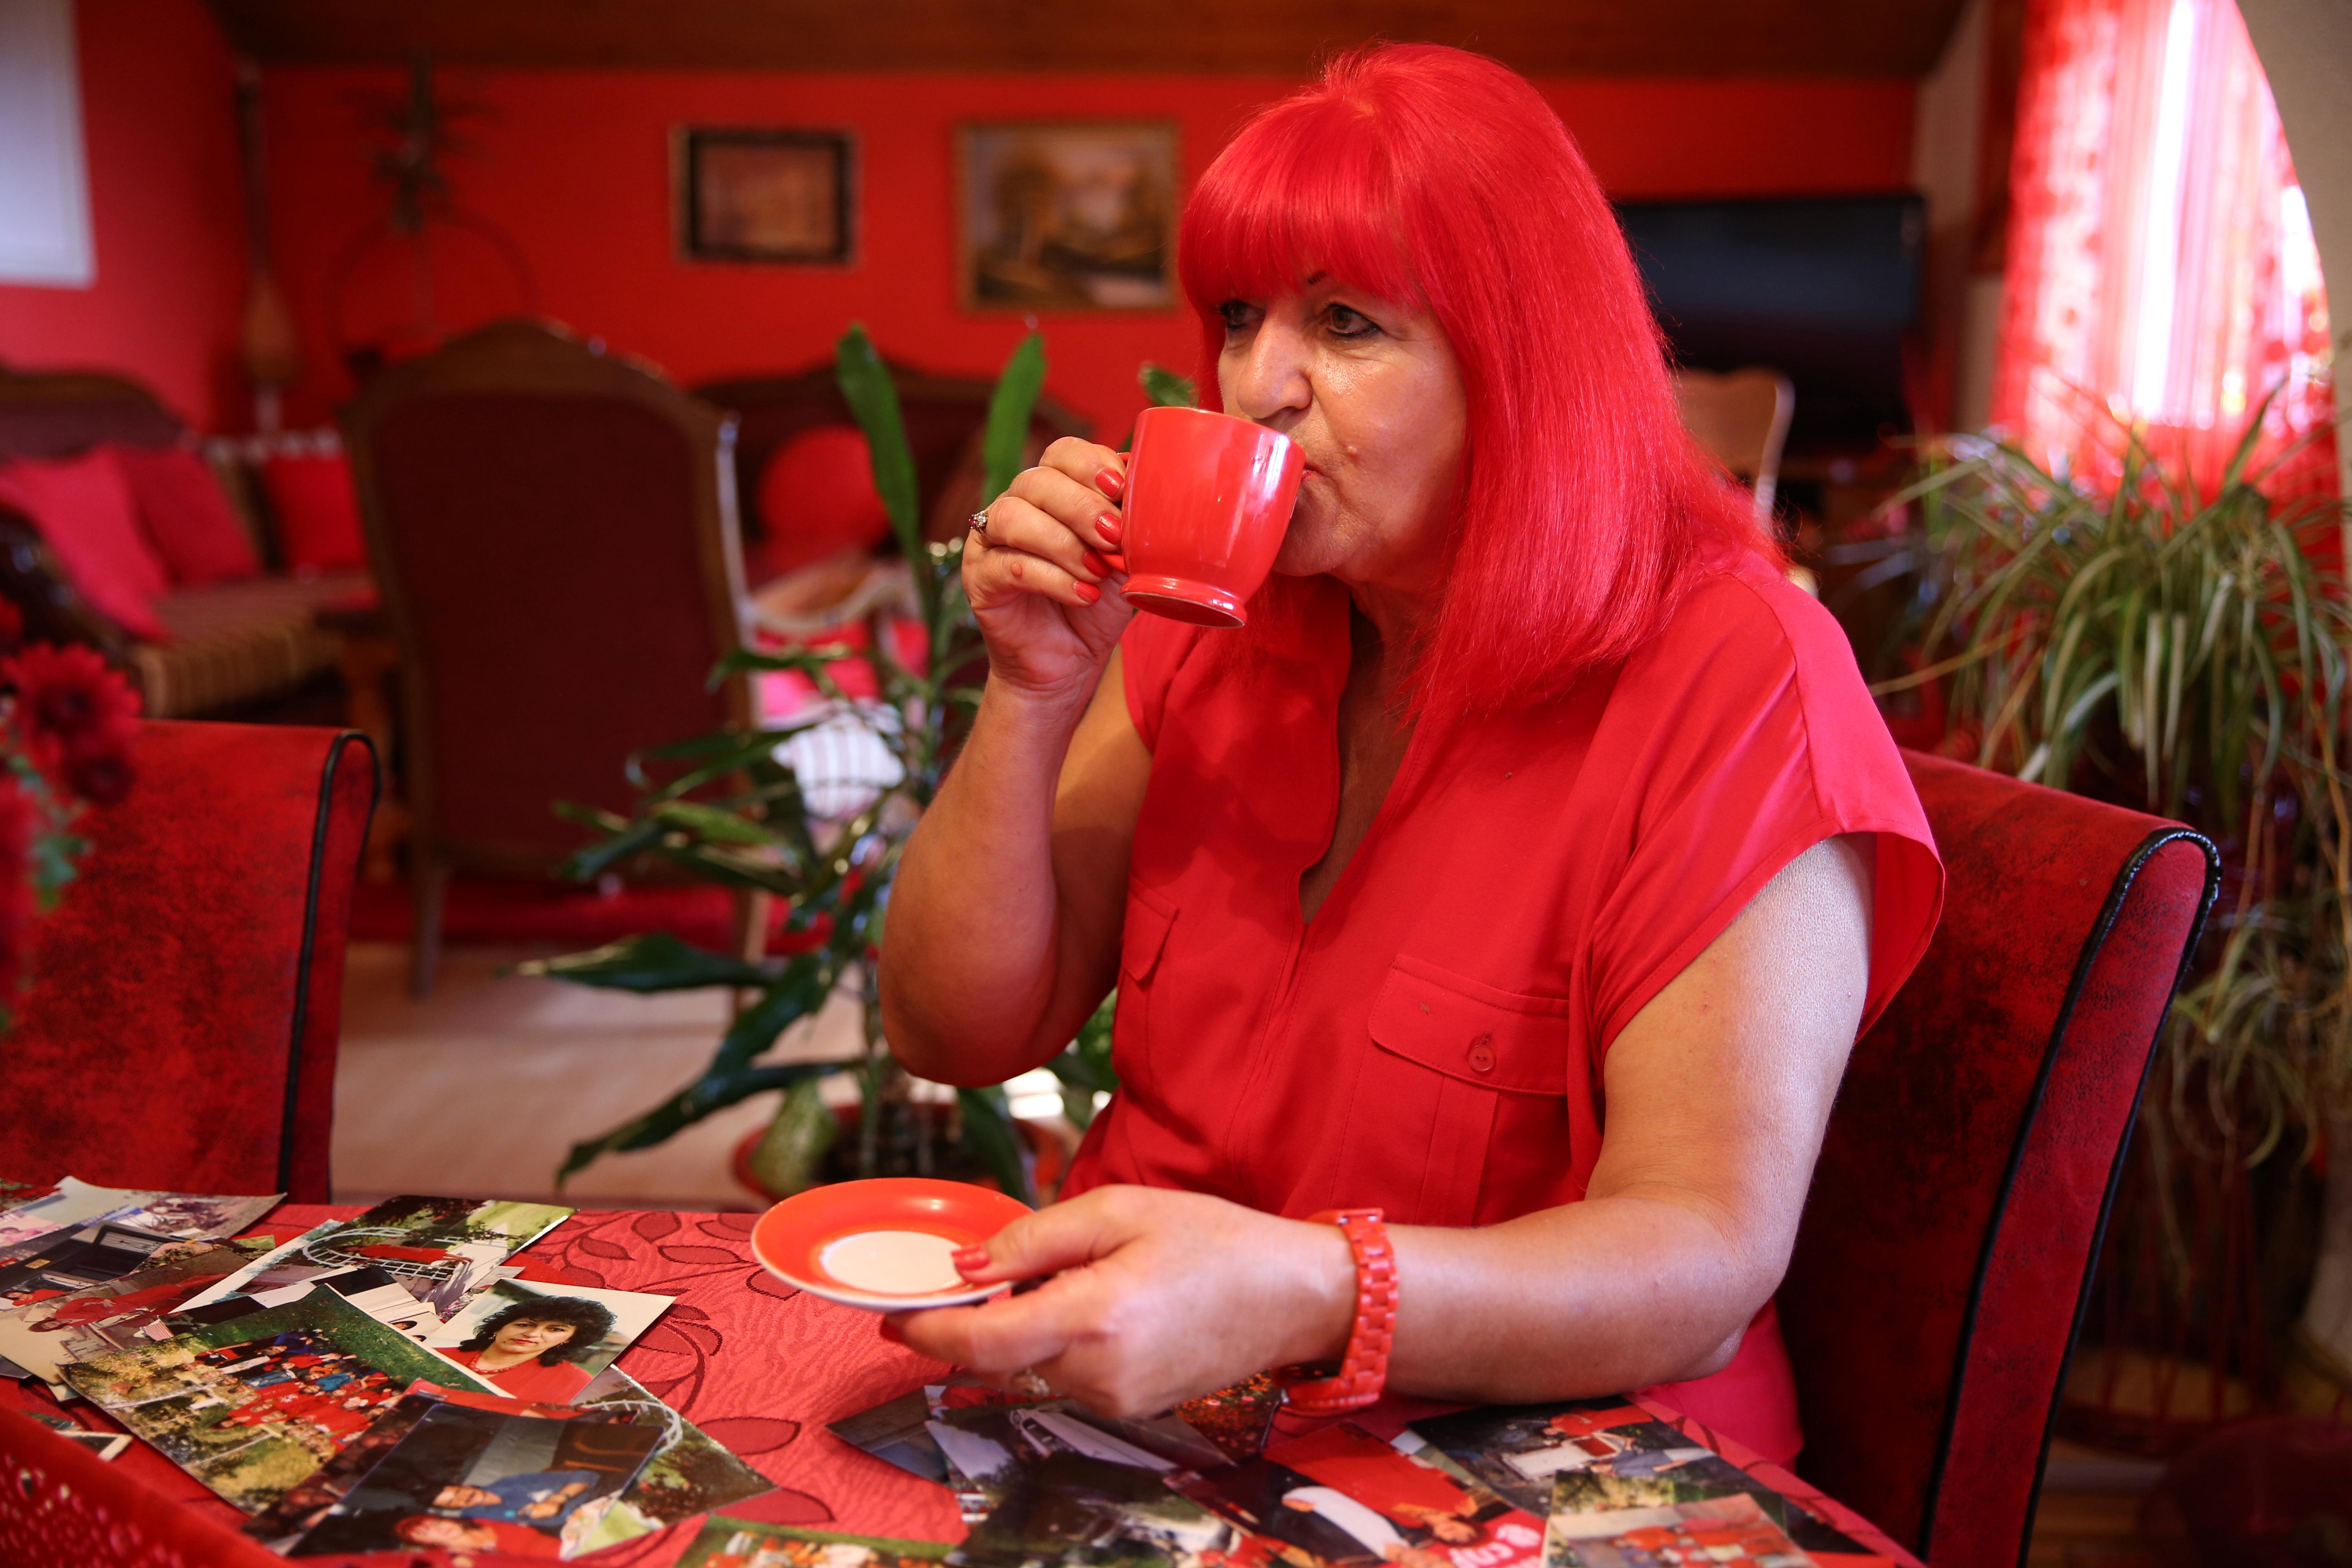 Bosnia's lady in red plans for the afterlife